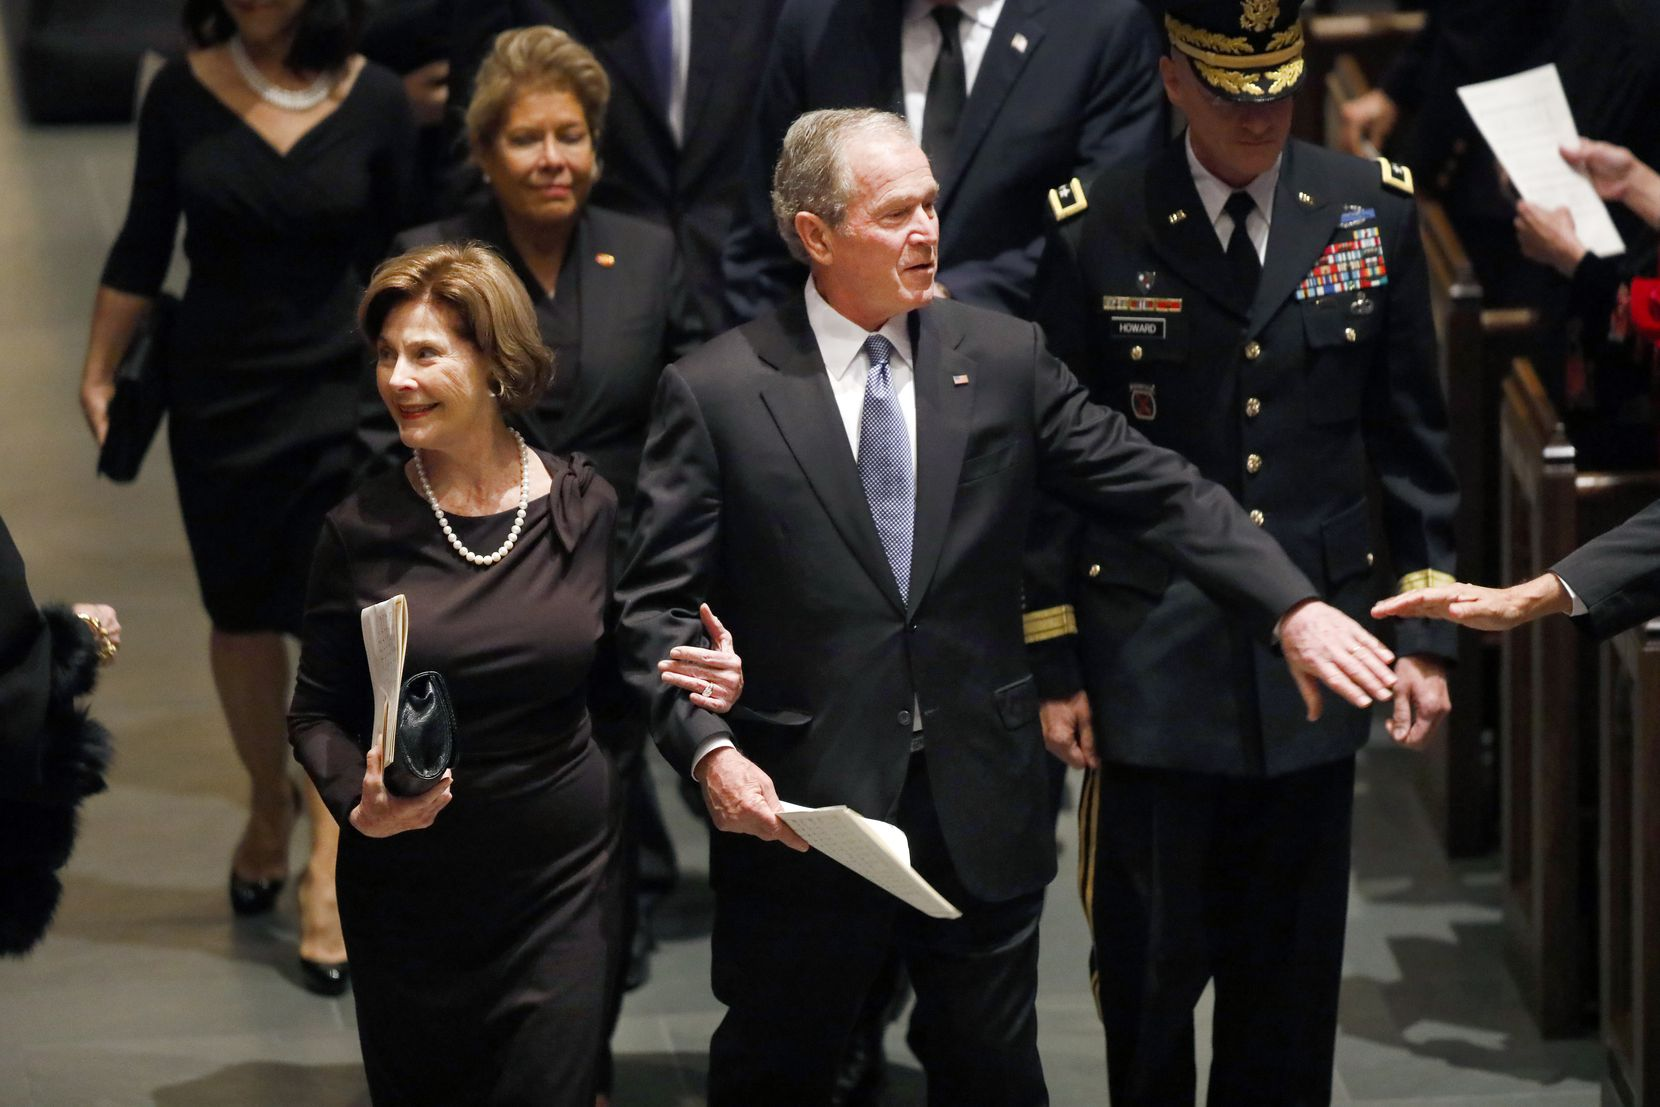 Former President George W. Bush and First Lady Laura Bush are greeted by well-wishers during the funeral recessional for George H.W. Bush, the 41st President of the United States, at St. Martin's Episcopal Church in Houston, Thursday, December 6, 2018. (Tom Fox/The Dallas Morning News)